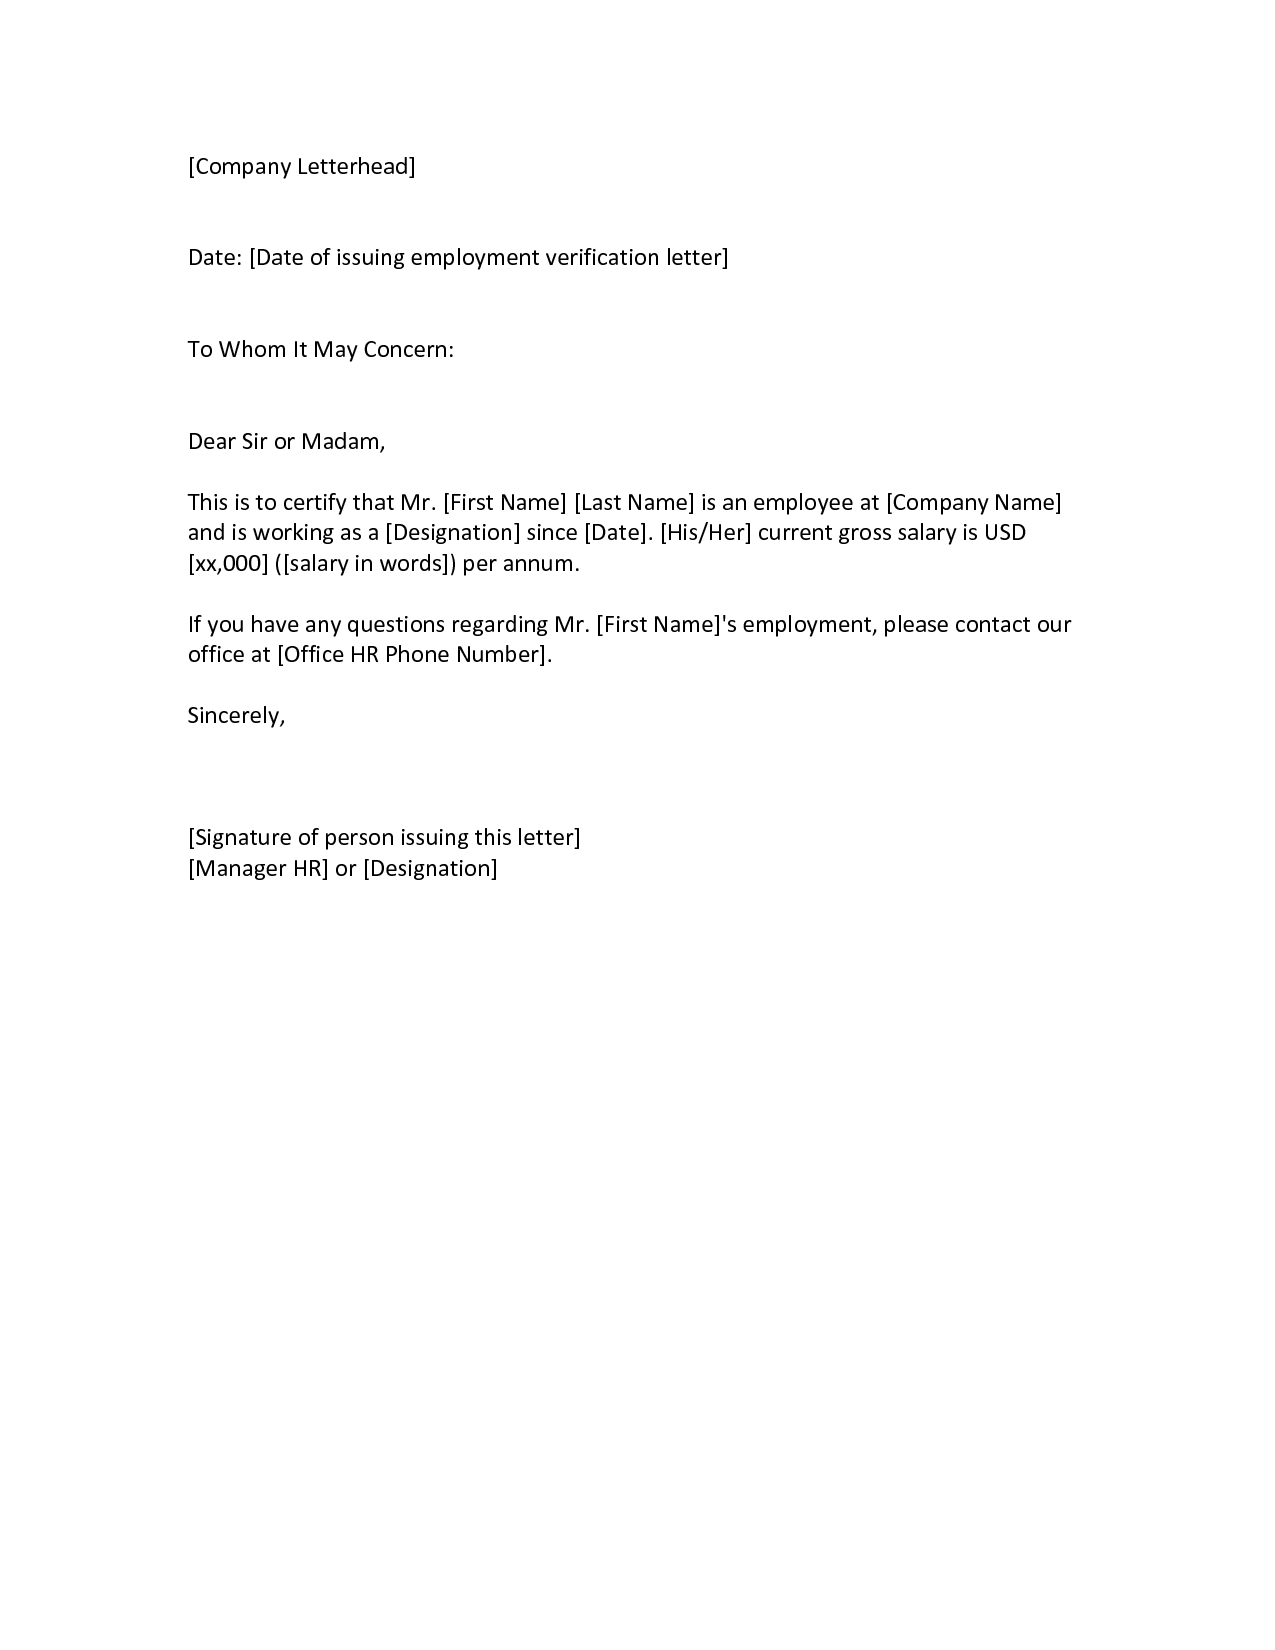 Employment verification letter to whom it may concern template employment verification letter to whom it may concern template spiritdancerdesigns Gallery